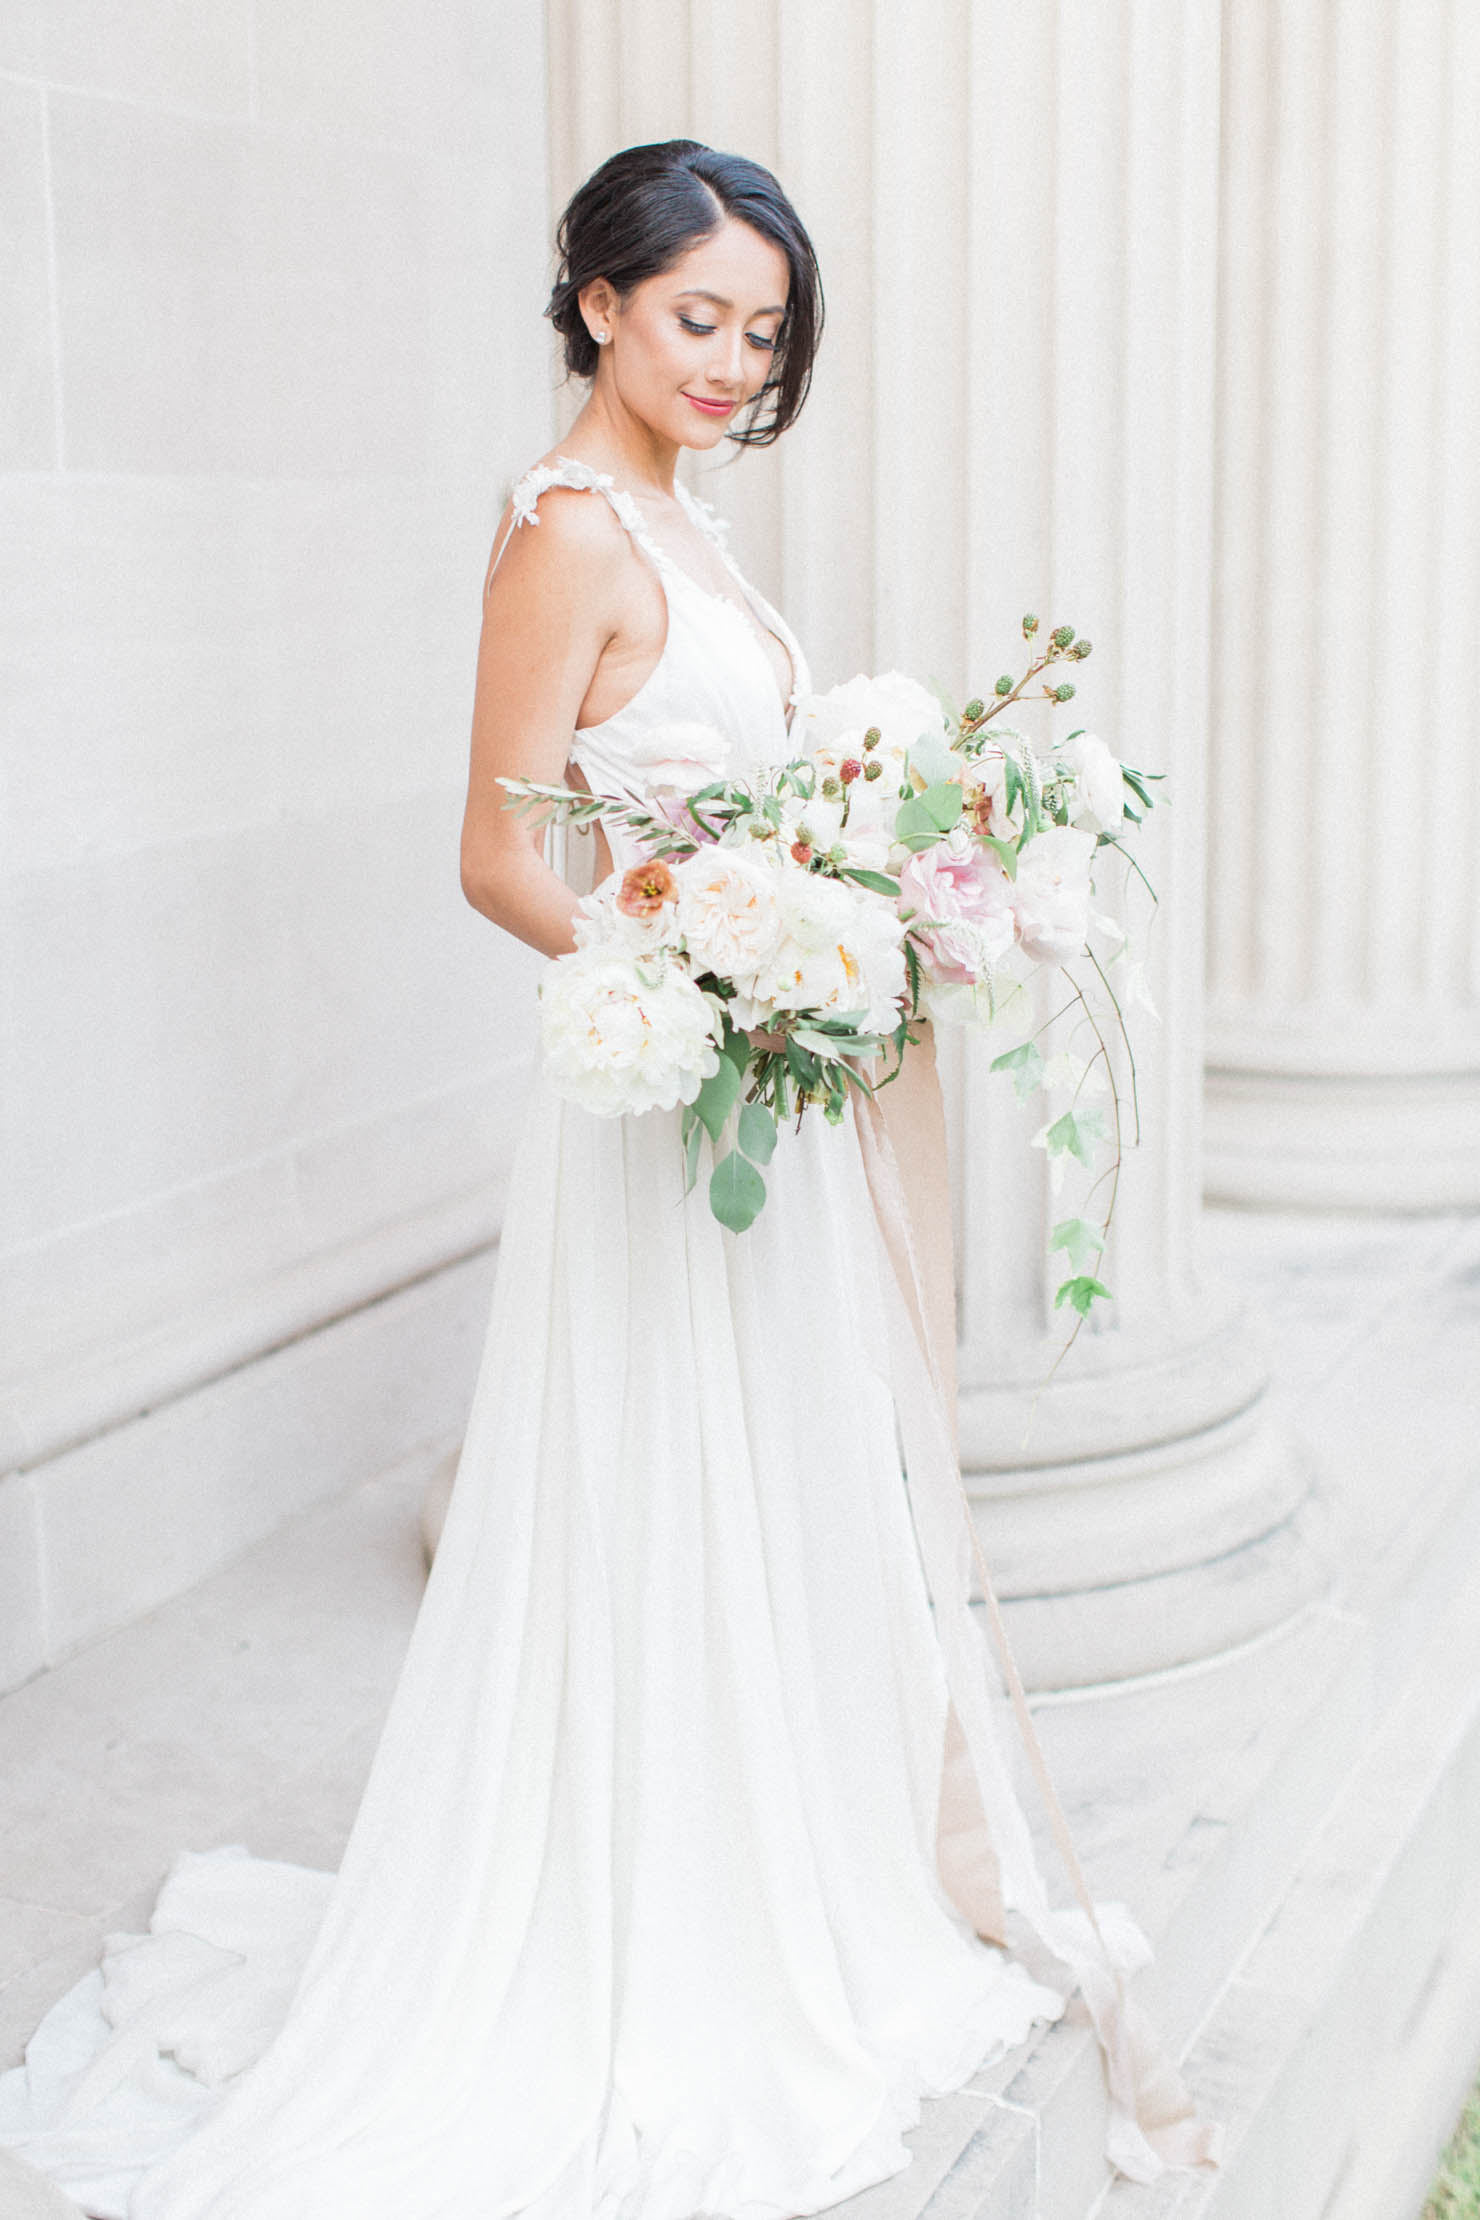 10 year wedding anniversary images of fashion blogger Lilly Beltran of Daily Craving blog